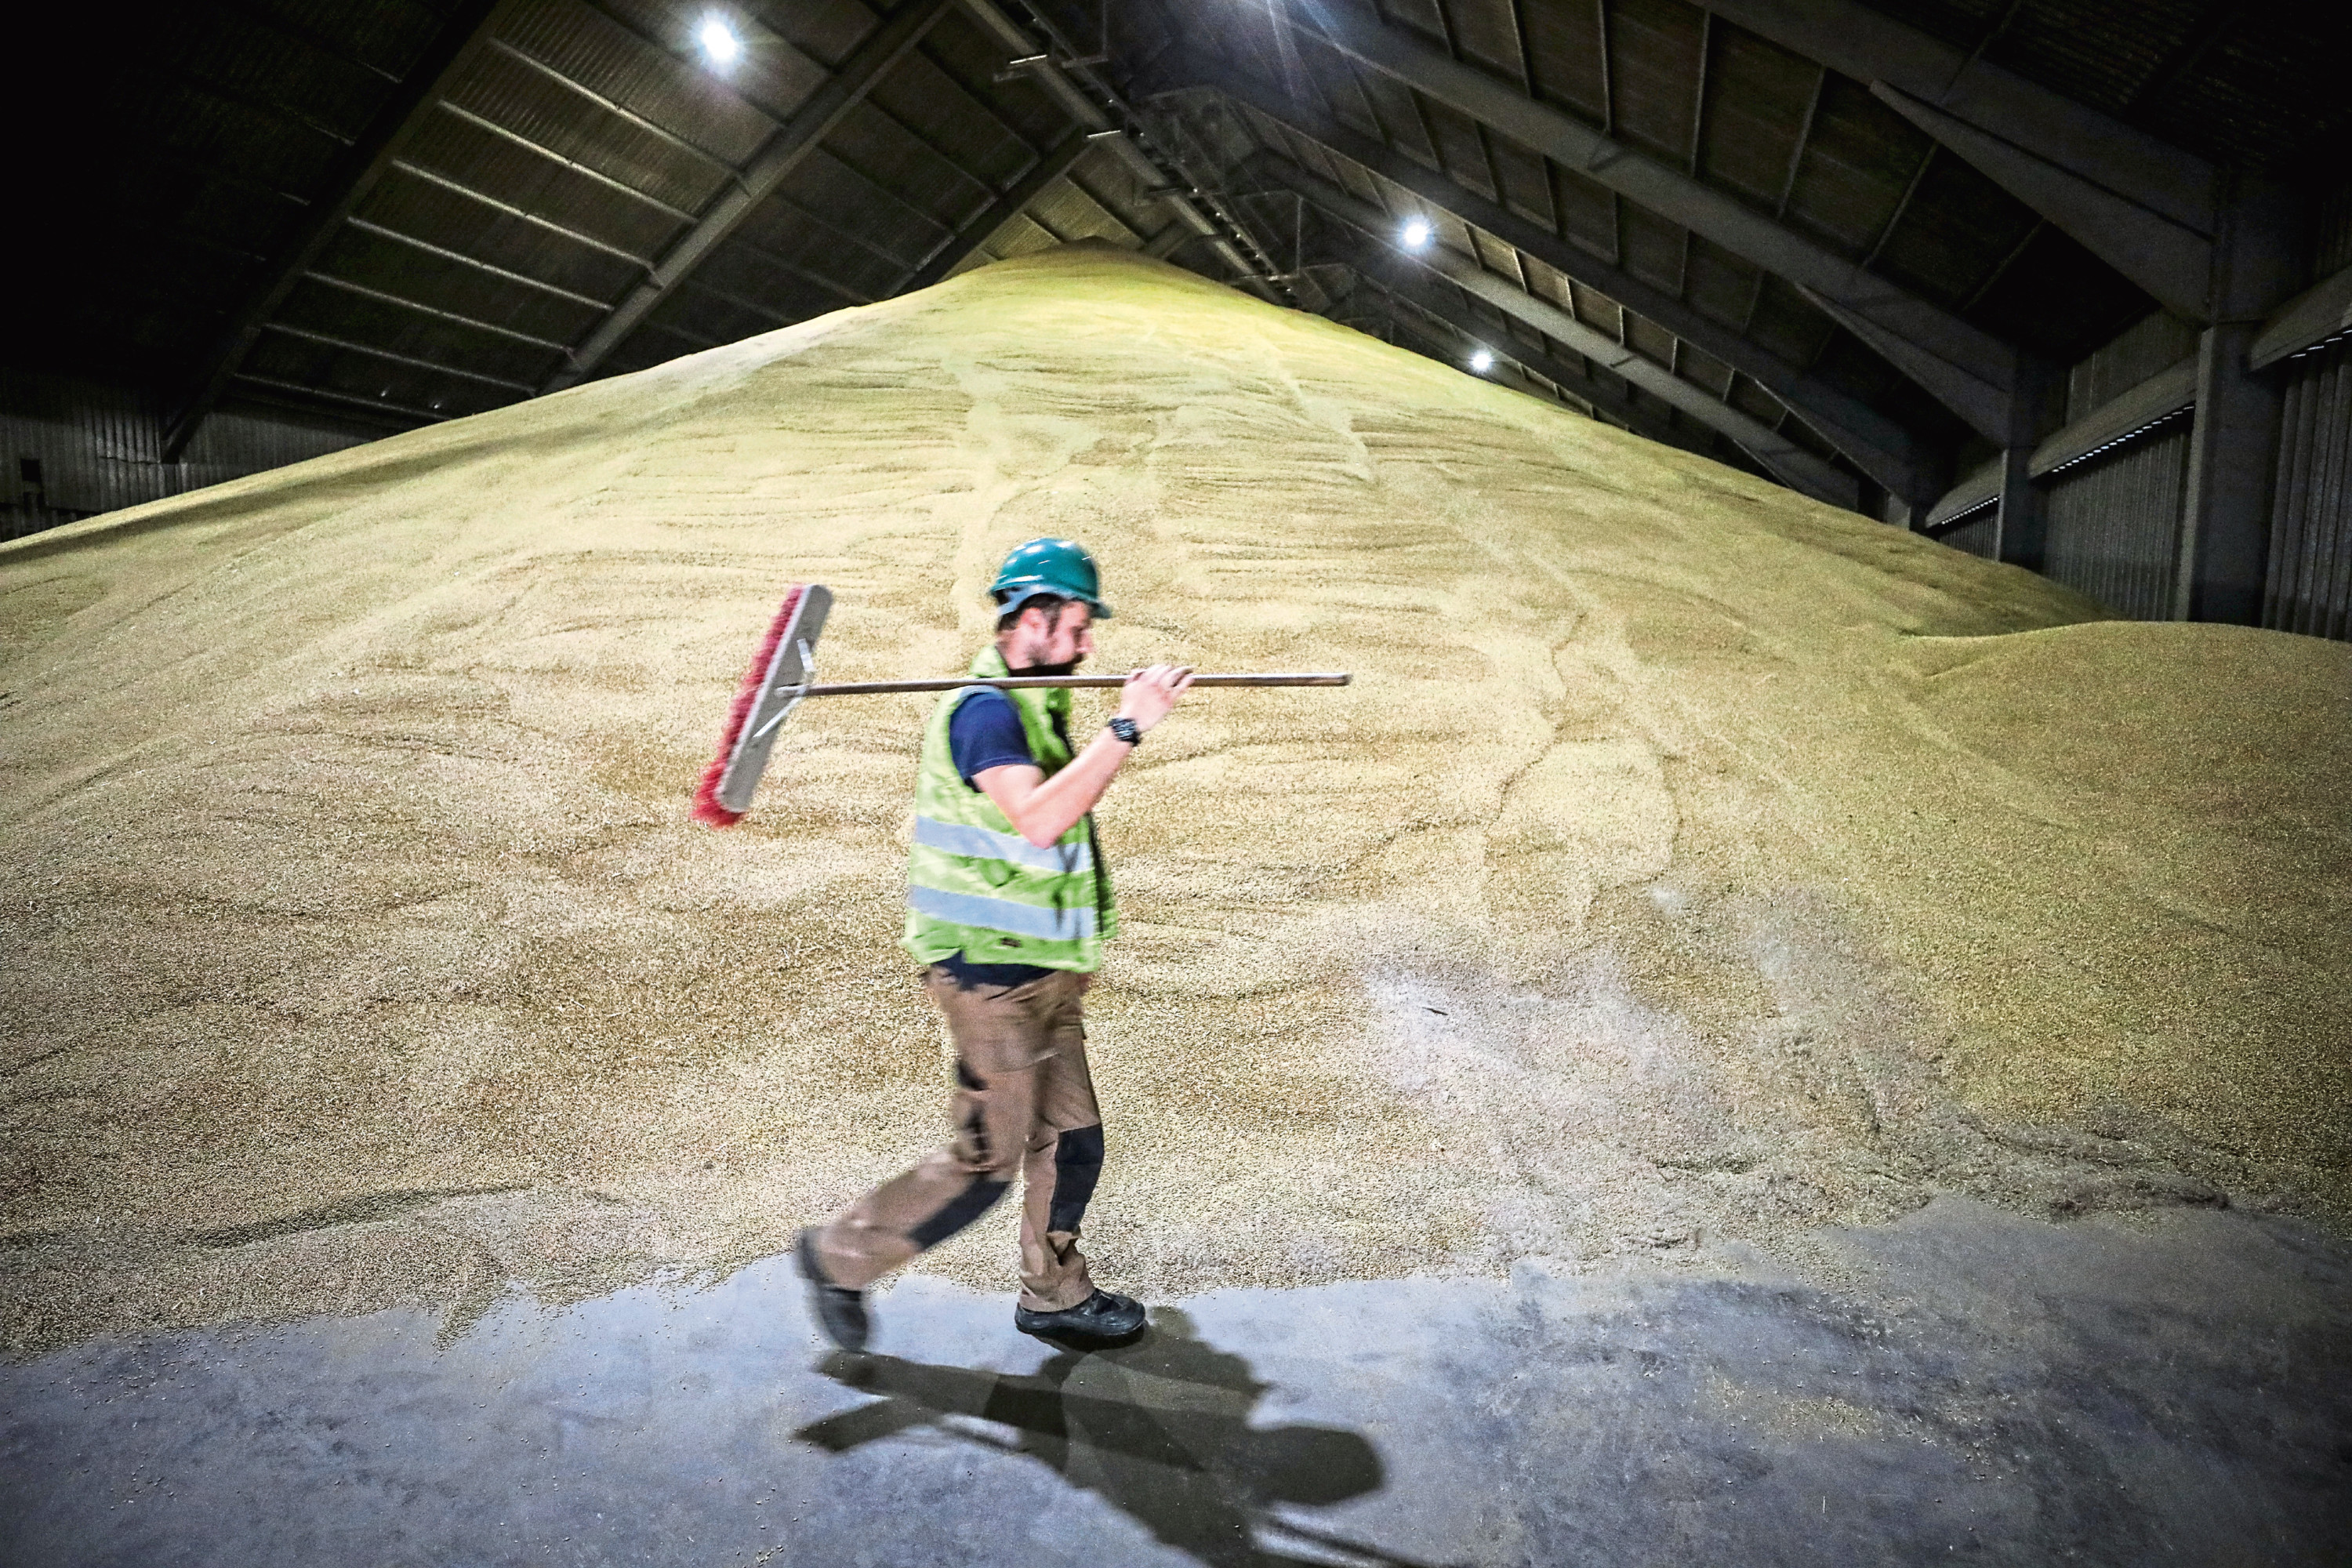 Courier News, Nancy Nicolson story CR0004063 . Forth Ports (Dundee) have had a hectic time with grain drying and storing of malting barley. Pic shows; Jake Low with Malting Barley being sorted, dried and checked at Forth Ports, Dundee Wednesday, 10th October, 2018. Kris Miller/DCT Media